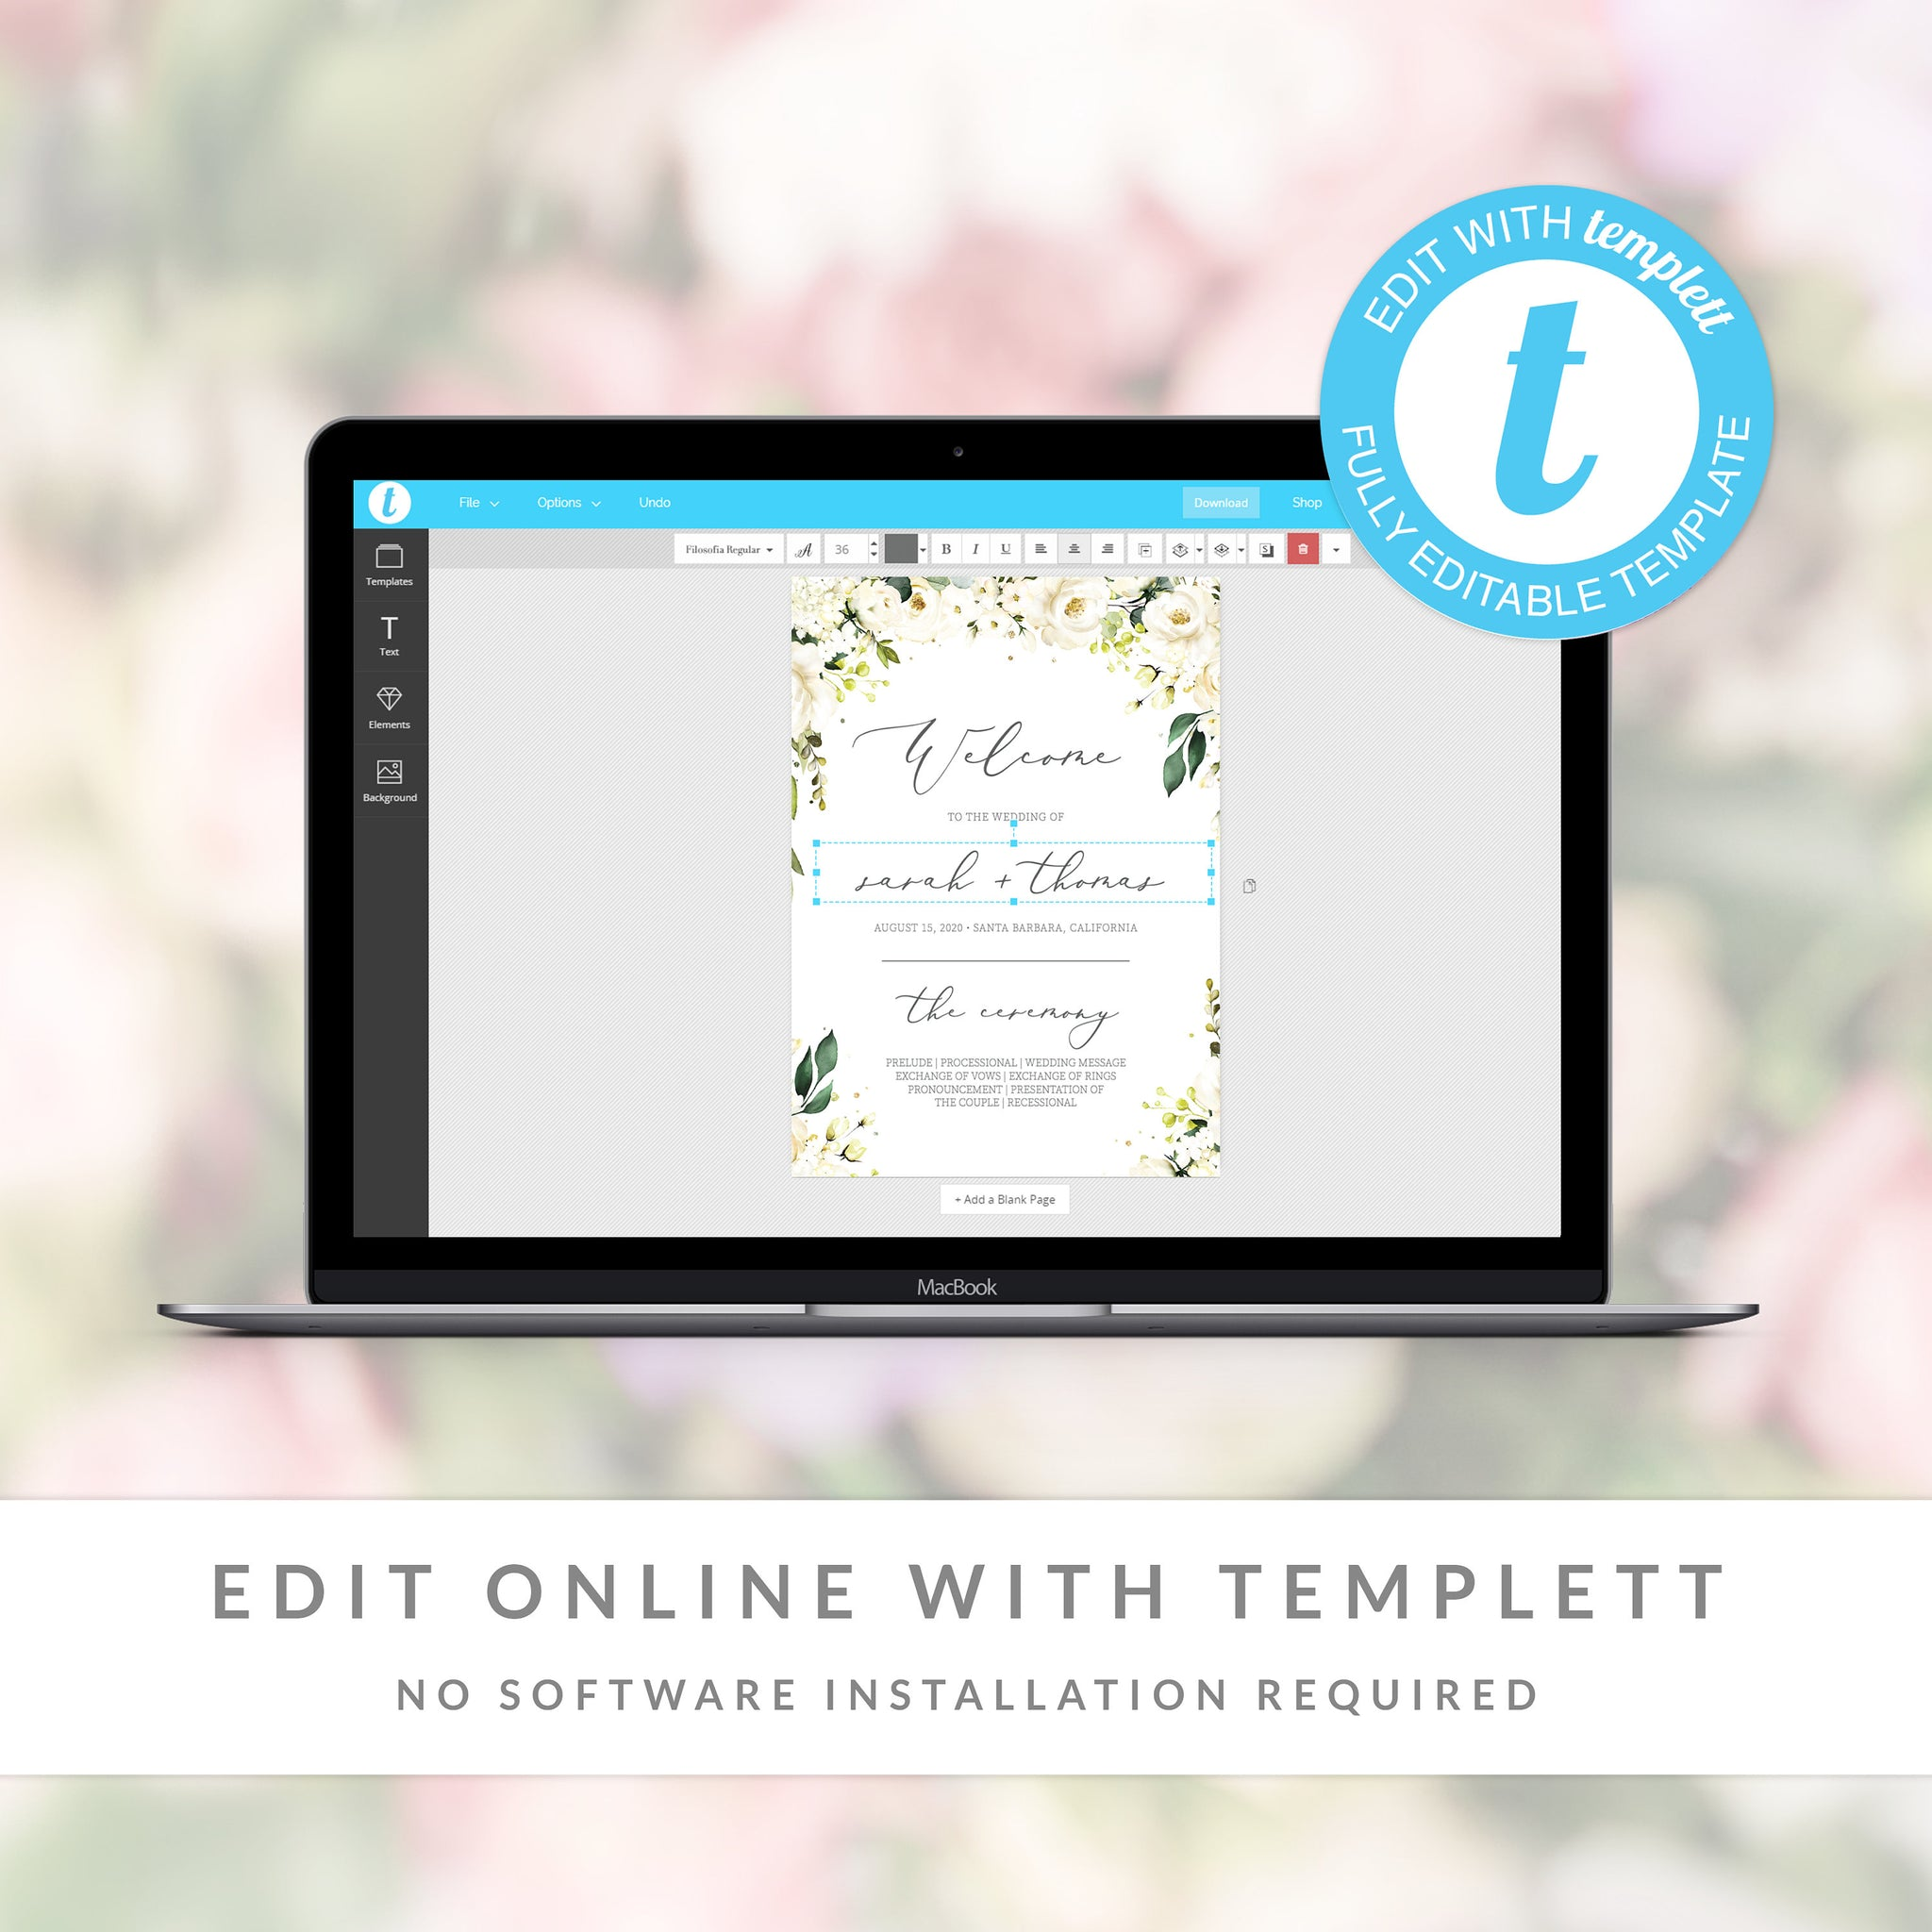 White Floral Greenery Wedding Program Template, Wedding Ceremony Programs, Editable Wedding Program, 5x7 DIGITAL DOWNLOAD - WRG100 - @PlumPolkaDot